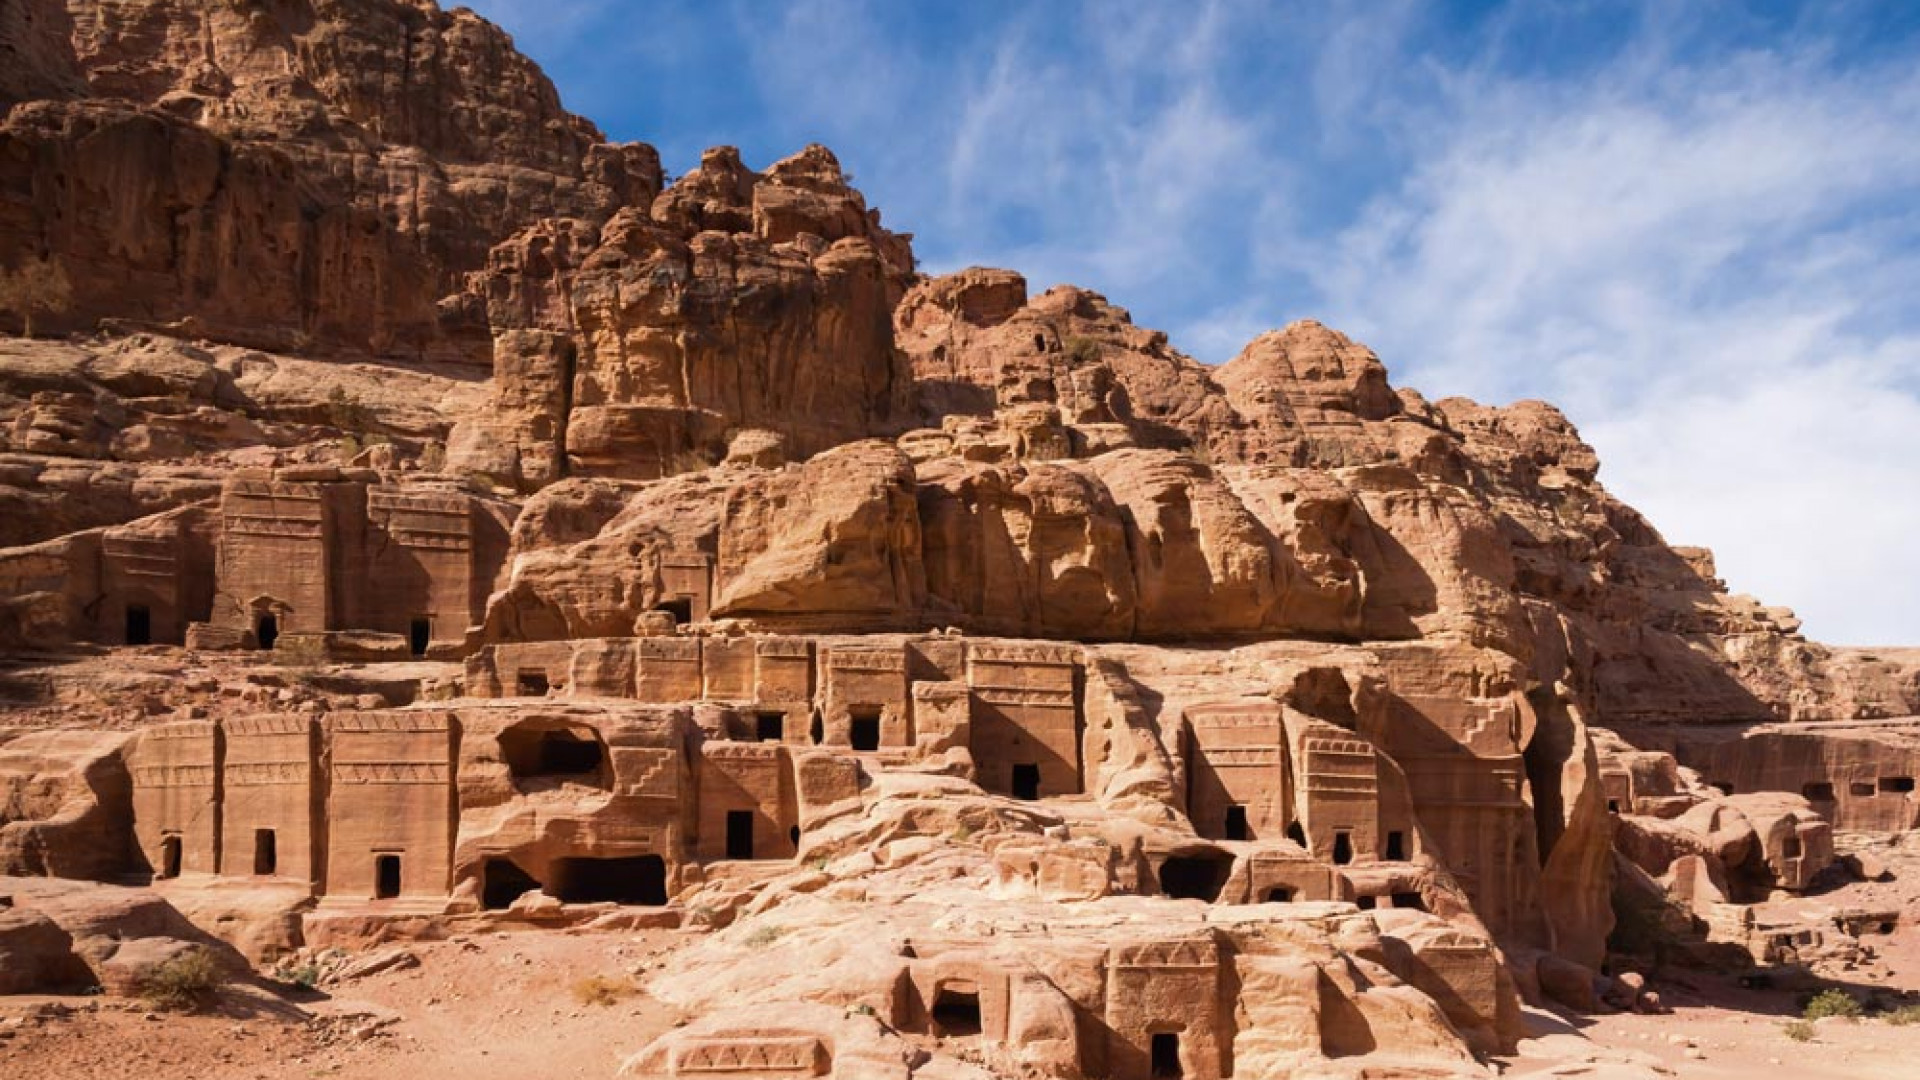 Facades of homes in ancient Petra